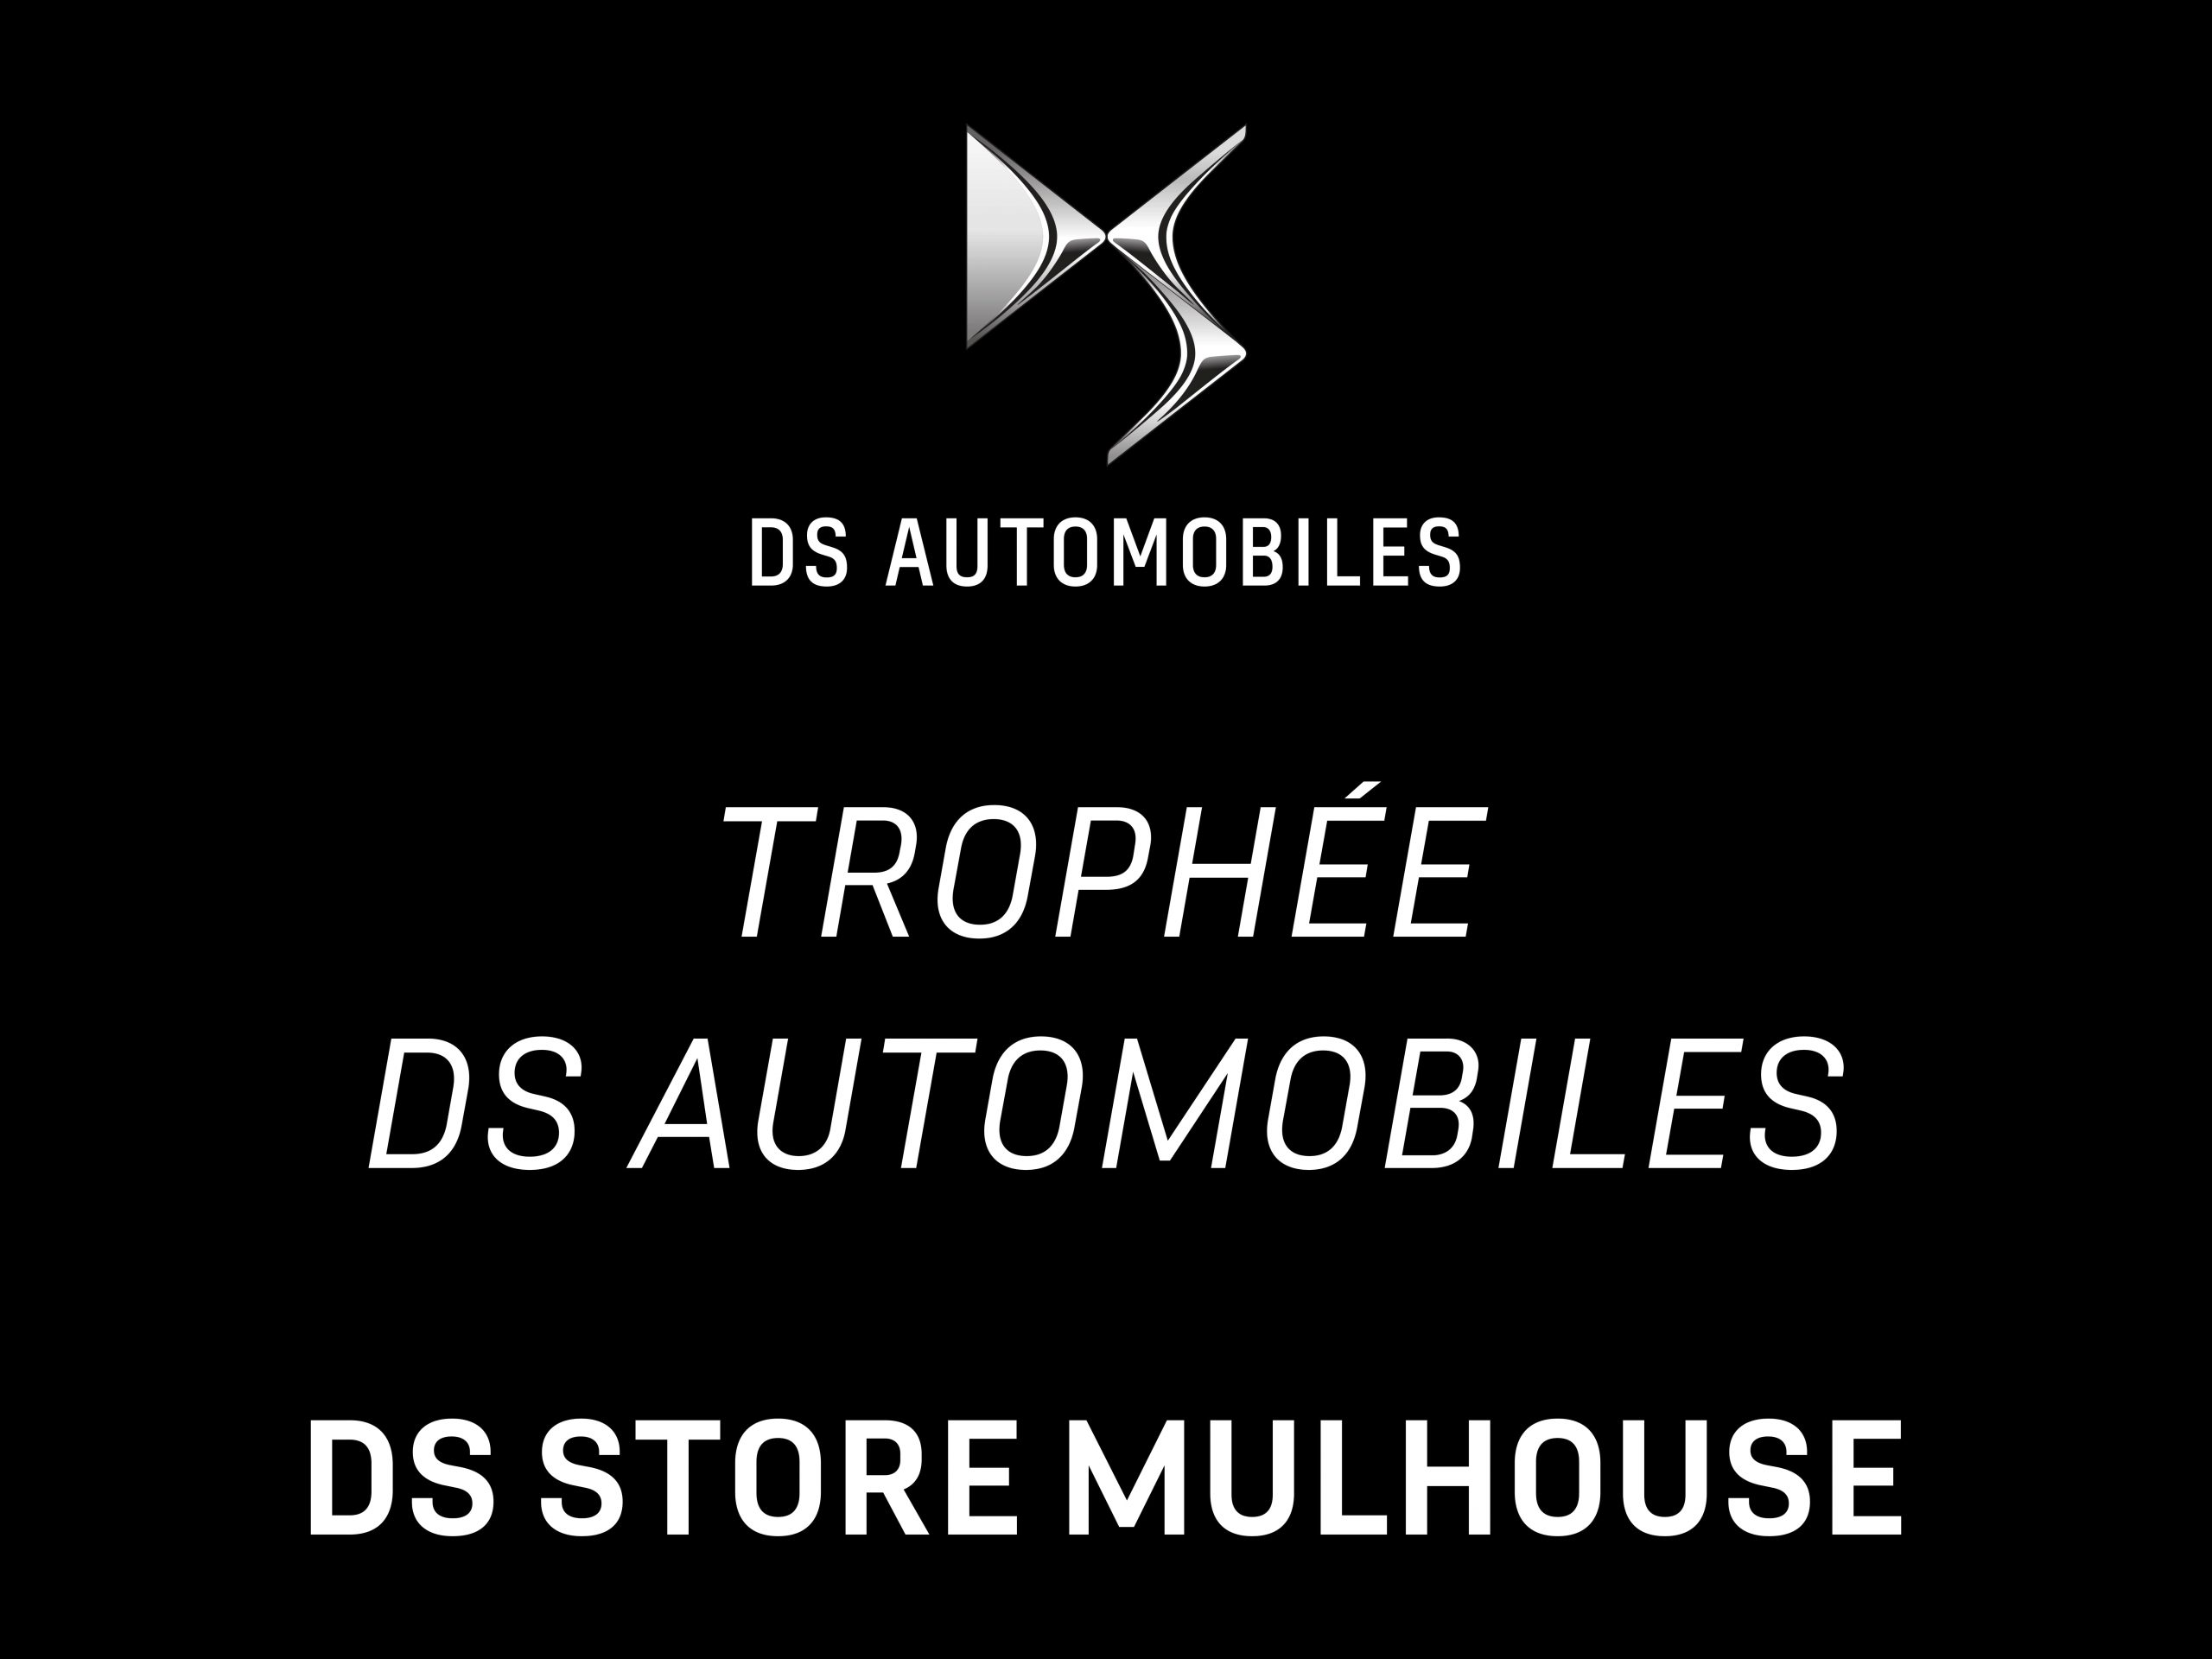 DS STORE MULHOUSE